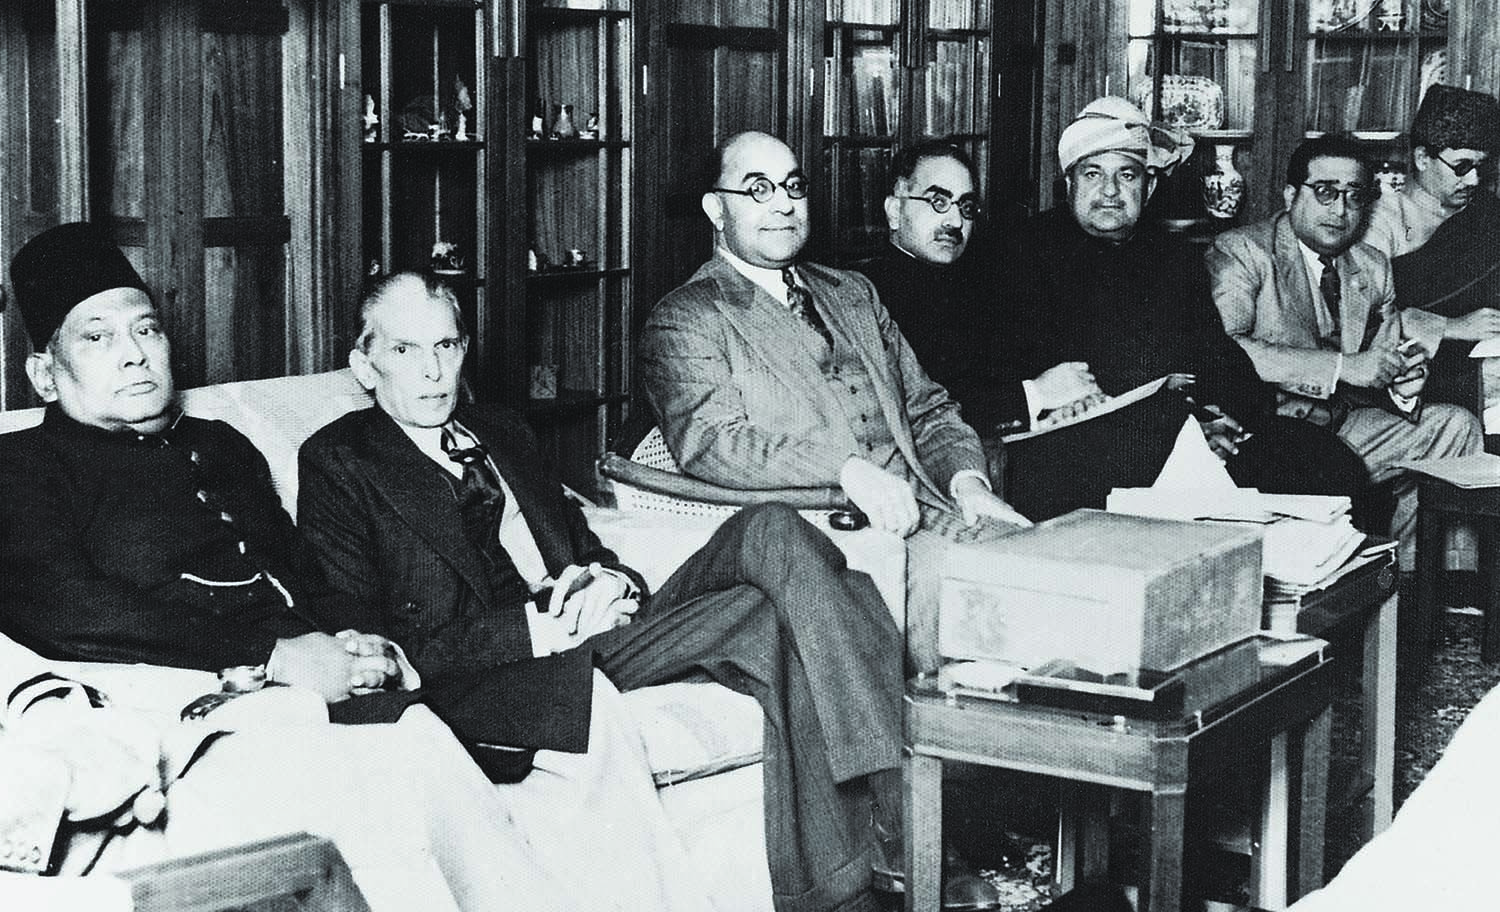 Nawabzada Liaquat Ali Khan often smiled as he faced the camera. He is seen here seated in the centre during a Muslim League Council Meeting in Bombay in the early 1940s. From extreme left are Sher-e-Bengal A.K. Fazlul Huq and Quaid-i-Azam Mohammad Ali Jinnah. On Liaquat's left are Sir Sikandar Hayat Khan, Sardar Aurangzeb Khan, and Amir Ahmed Khan, the famed Raja Sahib Mehmoodabad (extreme right). | Photo: Dawn / White Star Archives